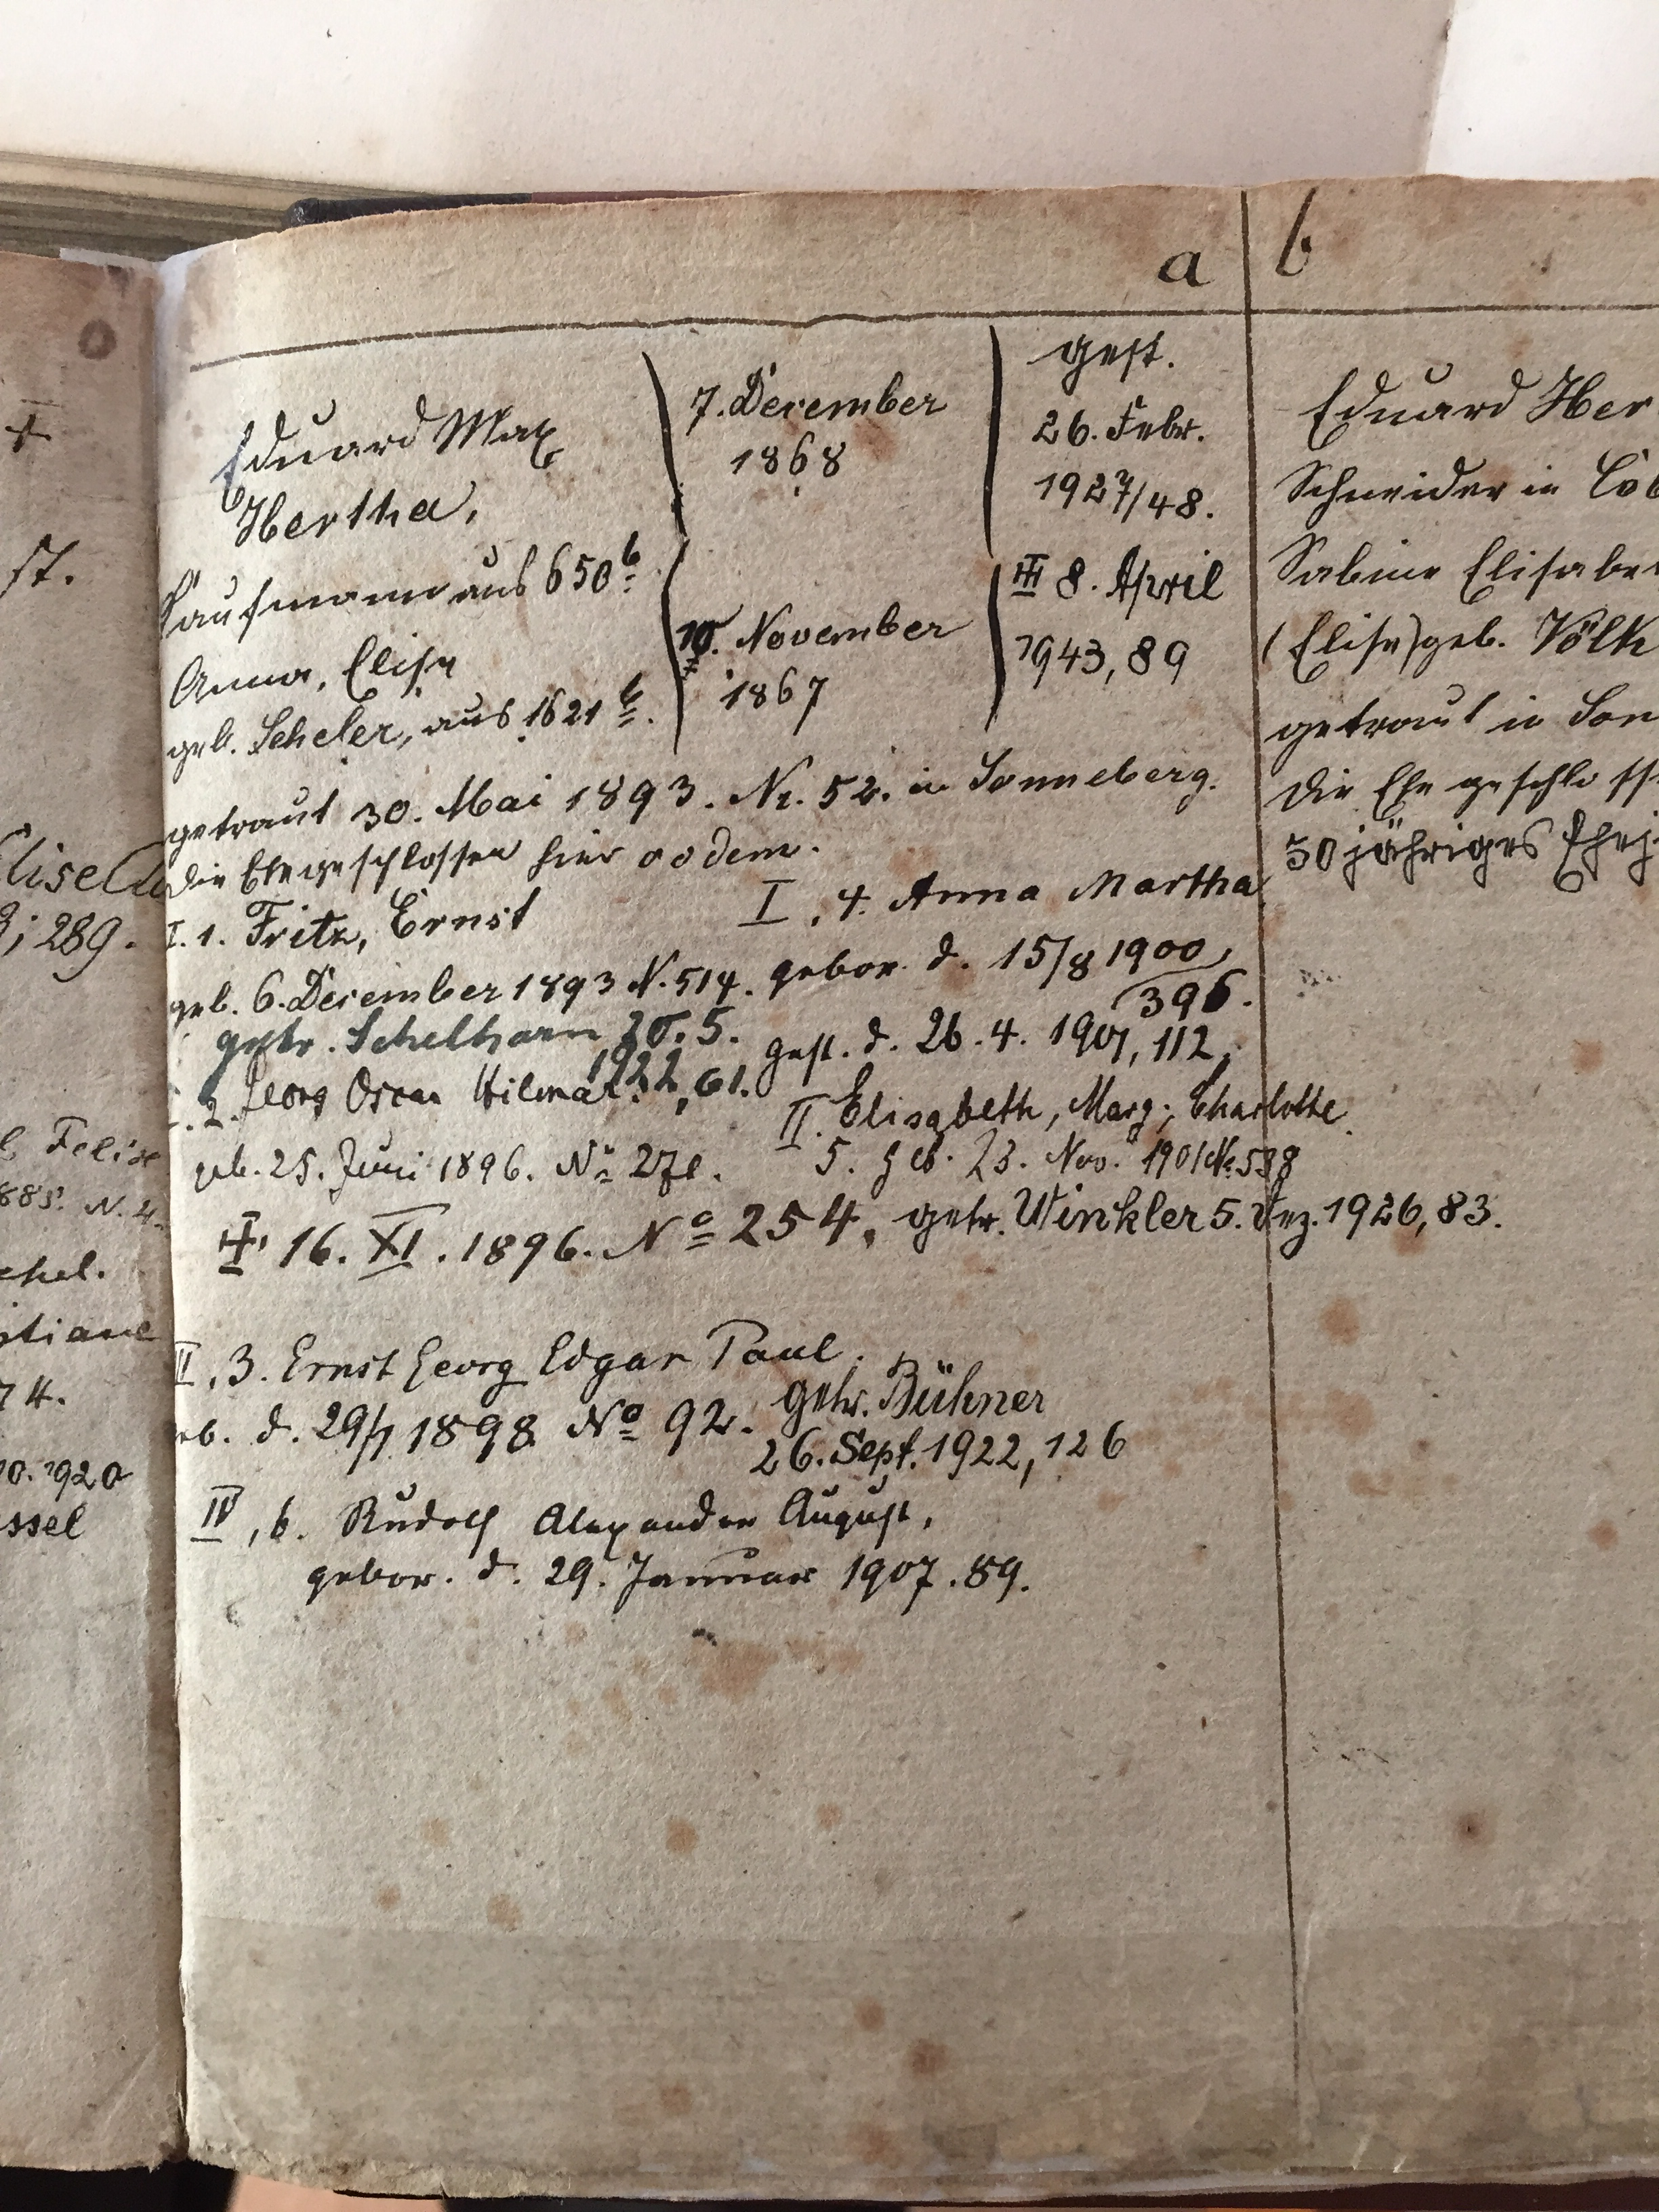 Church Record of my Great Grandfather (Max Hertha)